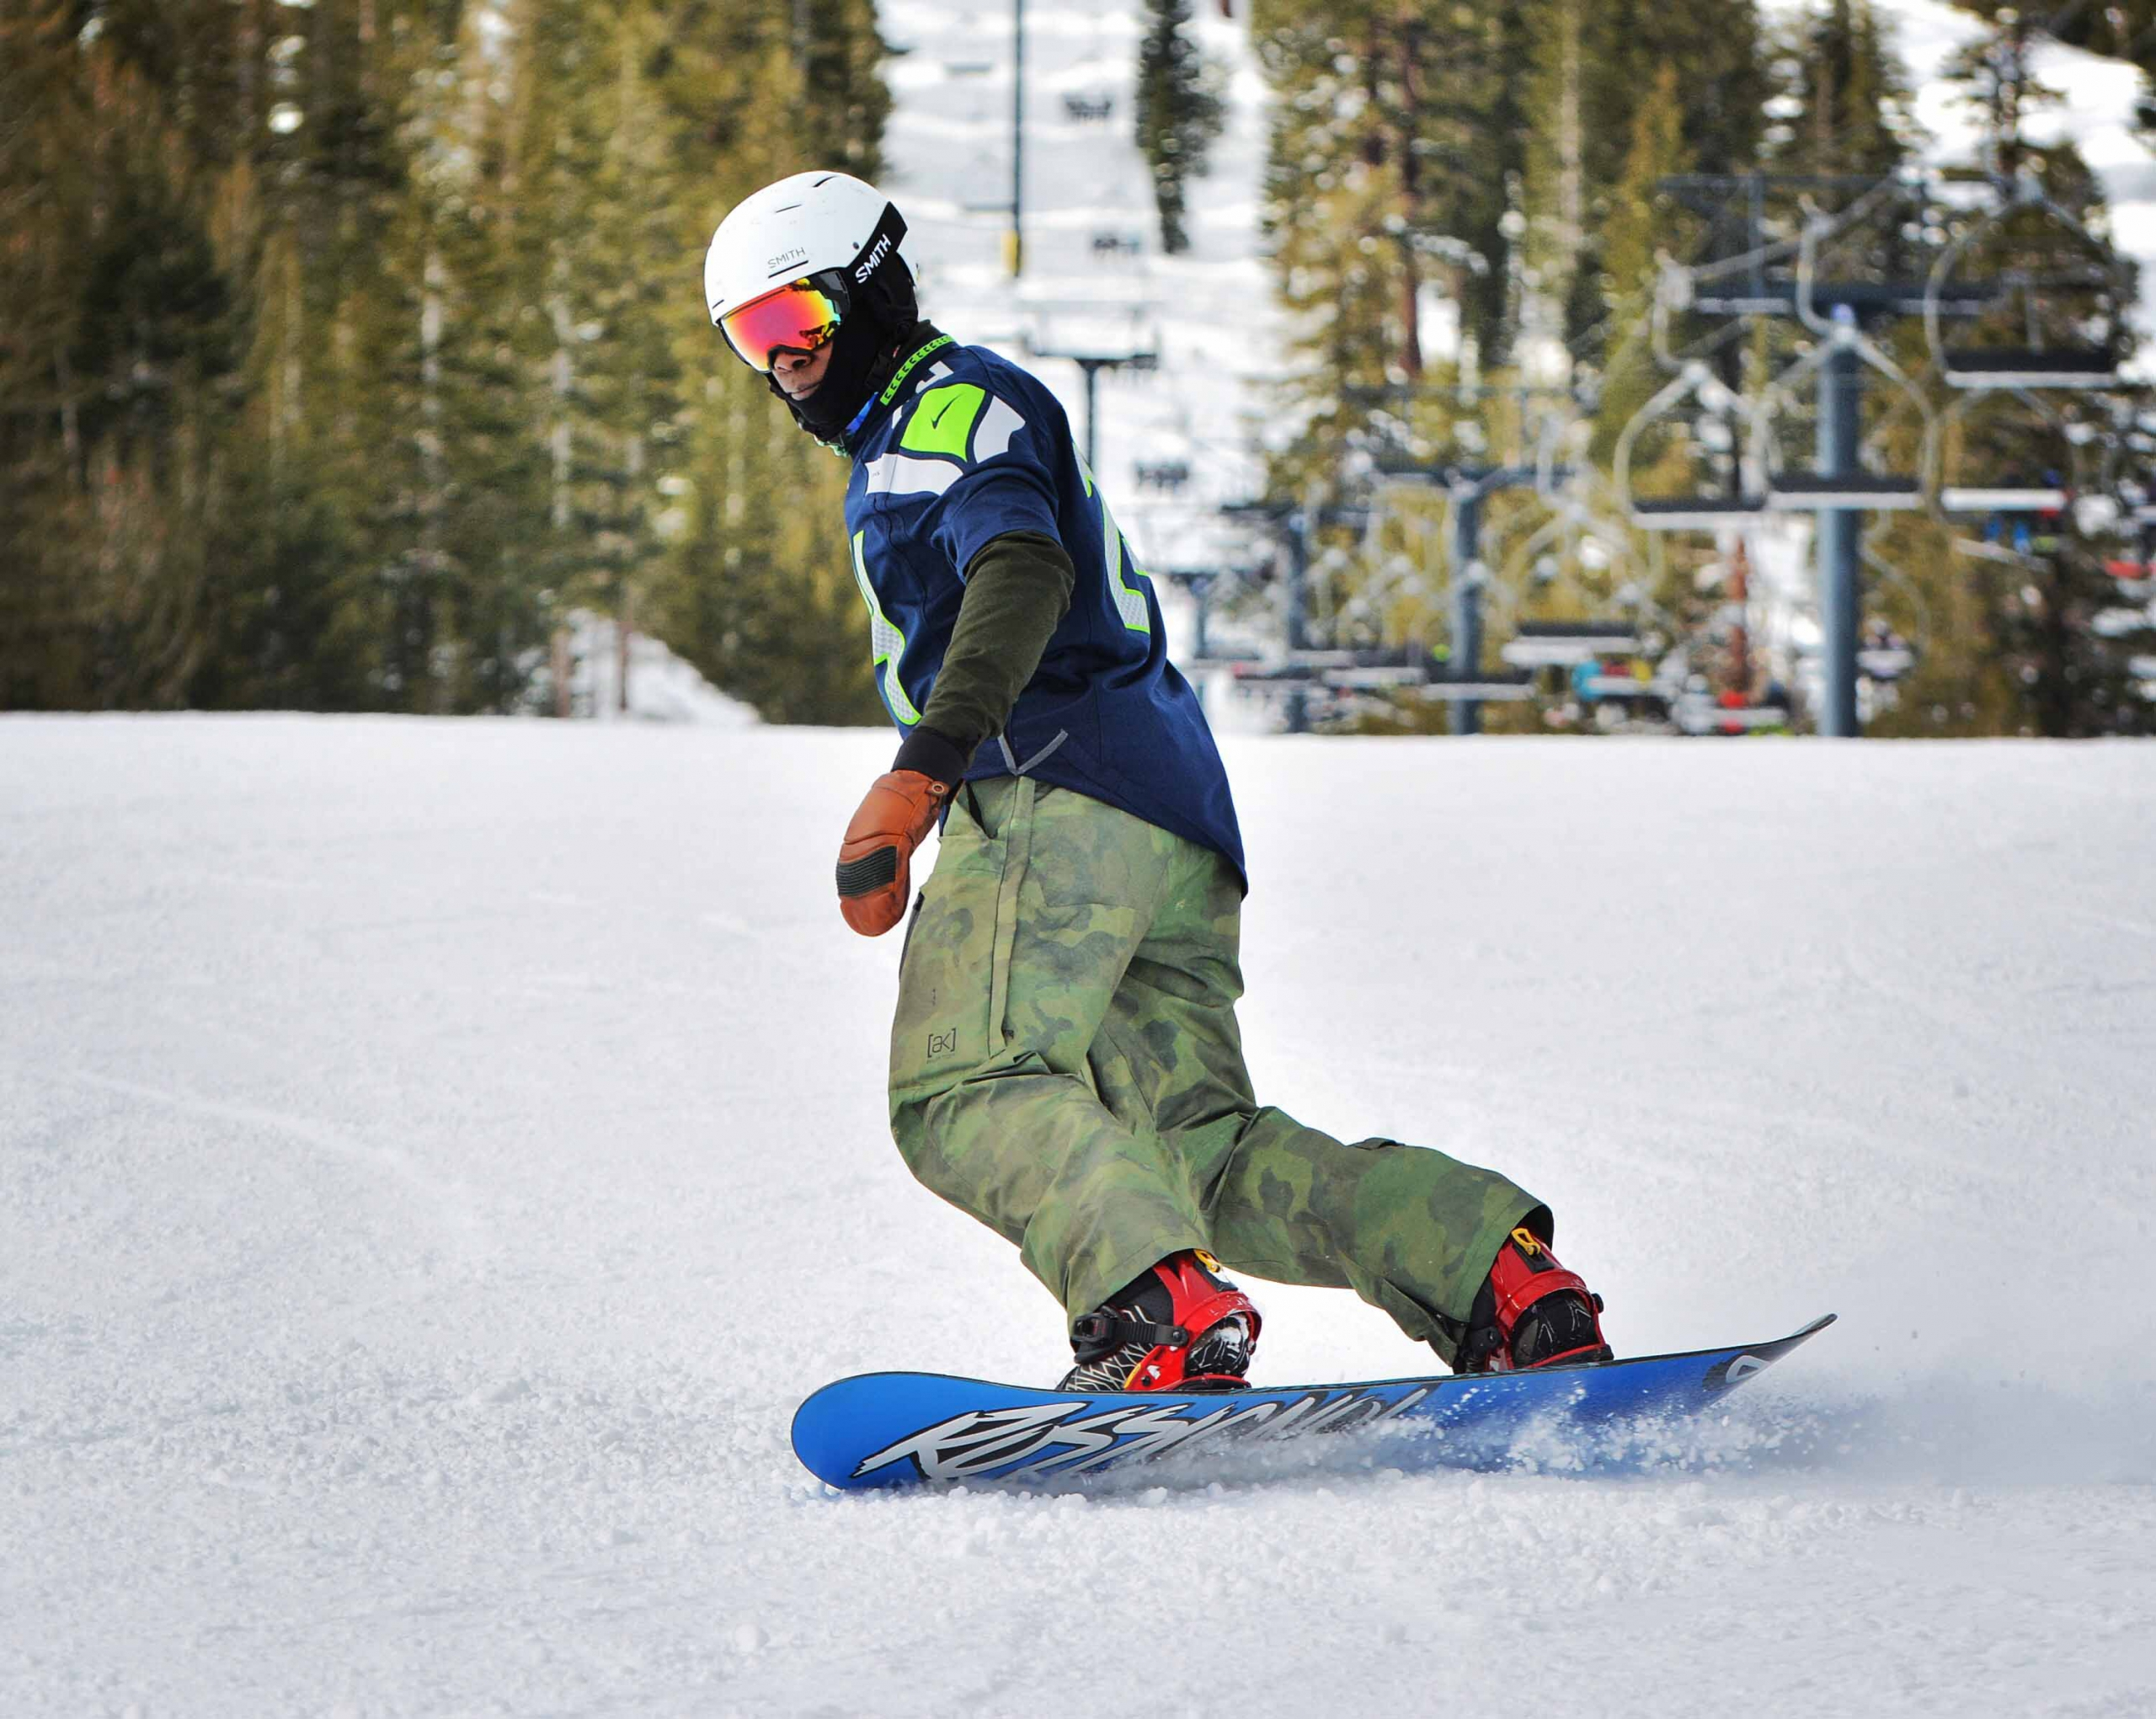 PSIA-AASI Member Marshal Titus snowboard in a Seattle Seahawks jersey